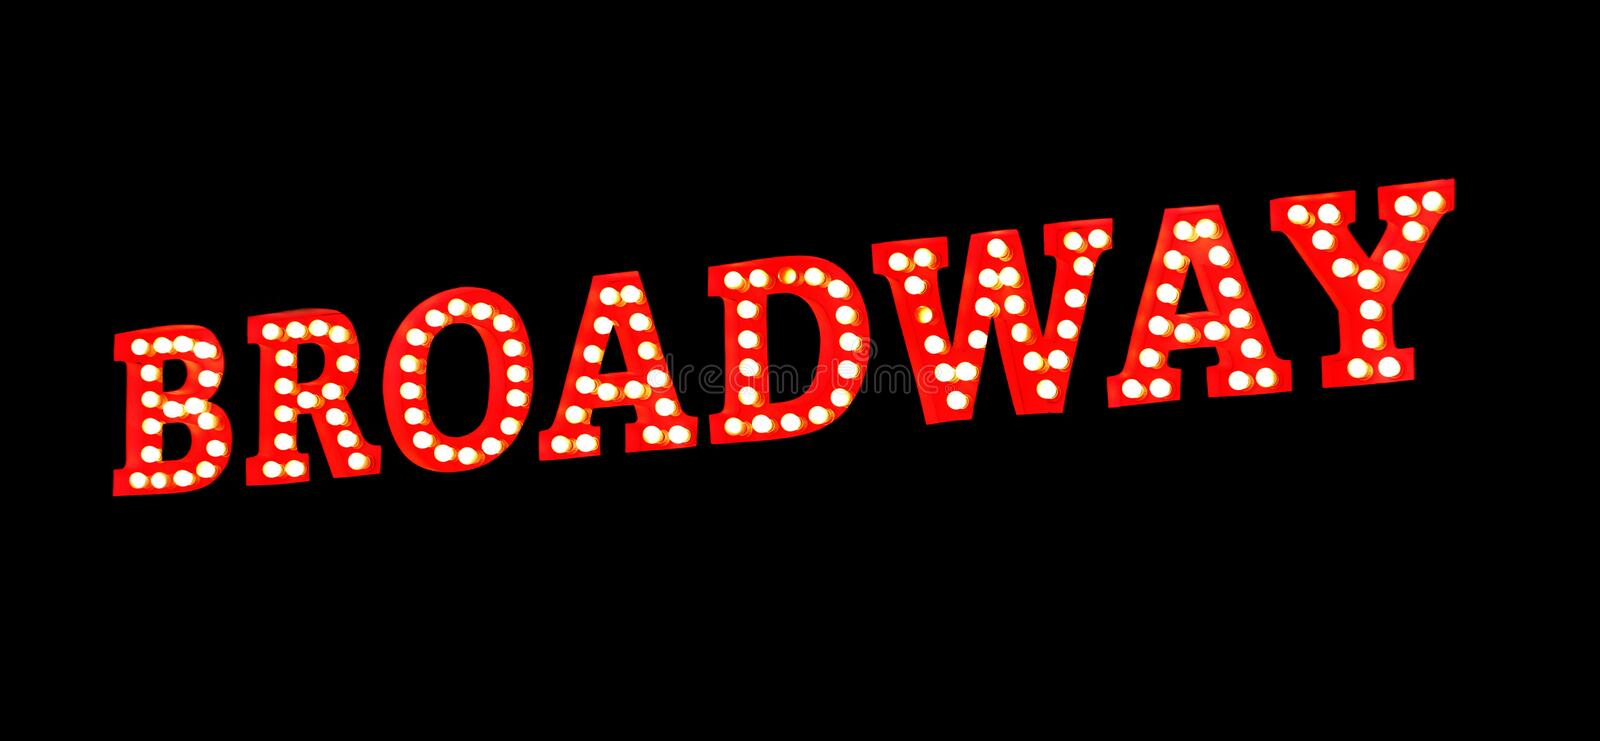 Broadway ilumina o sinal foto de stock royalty free